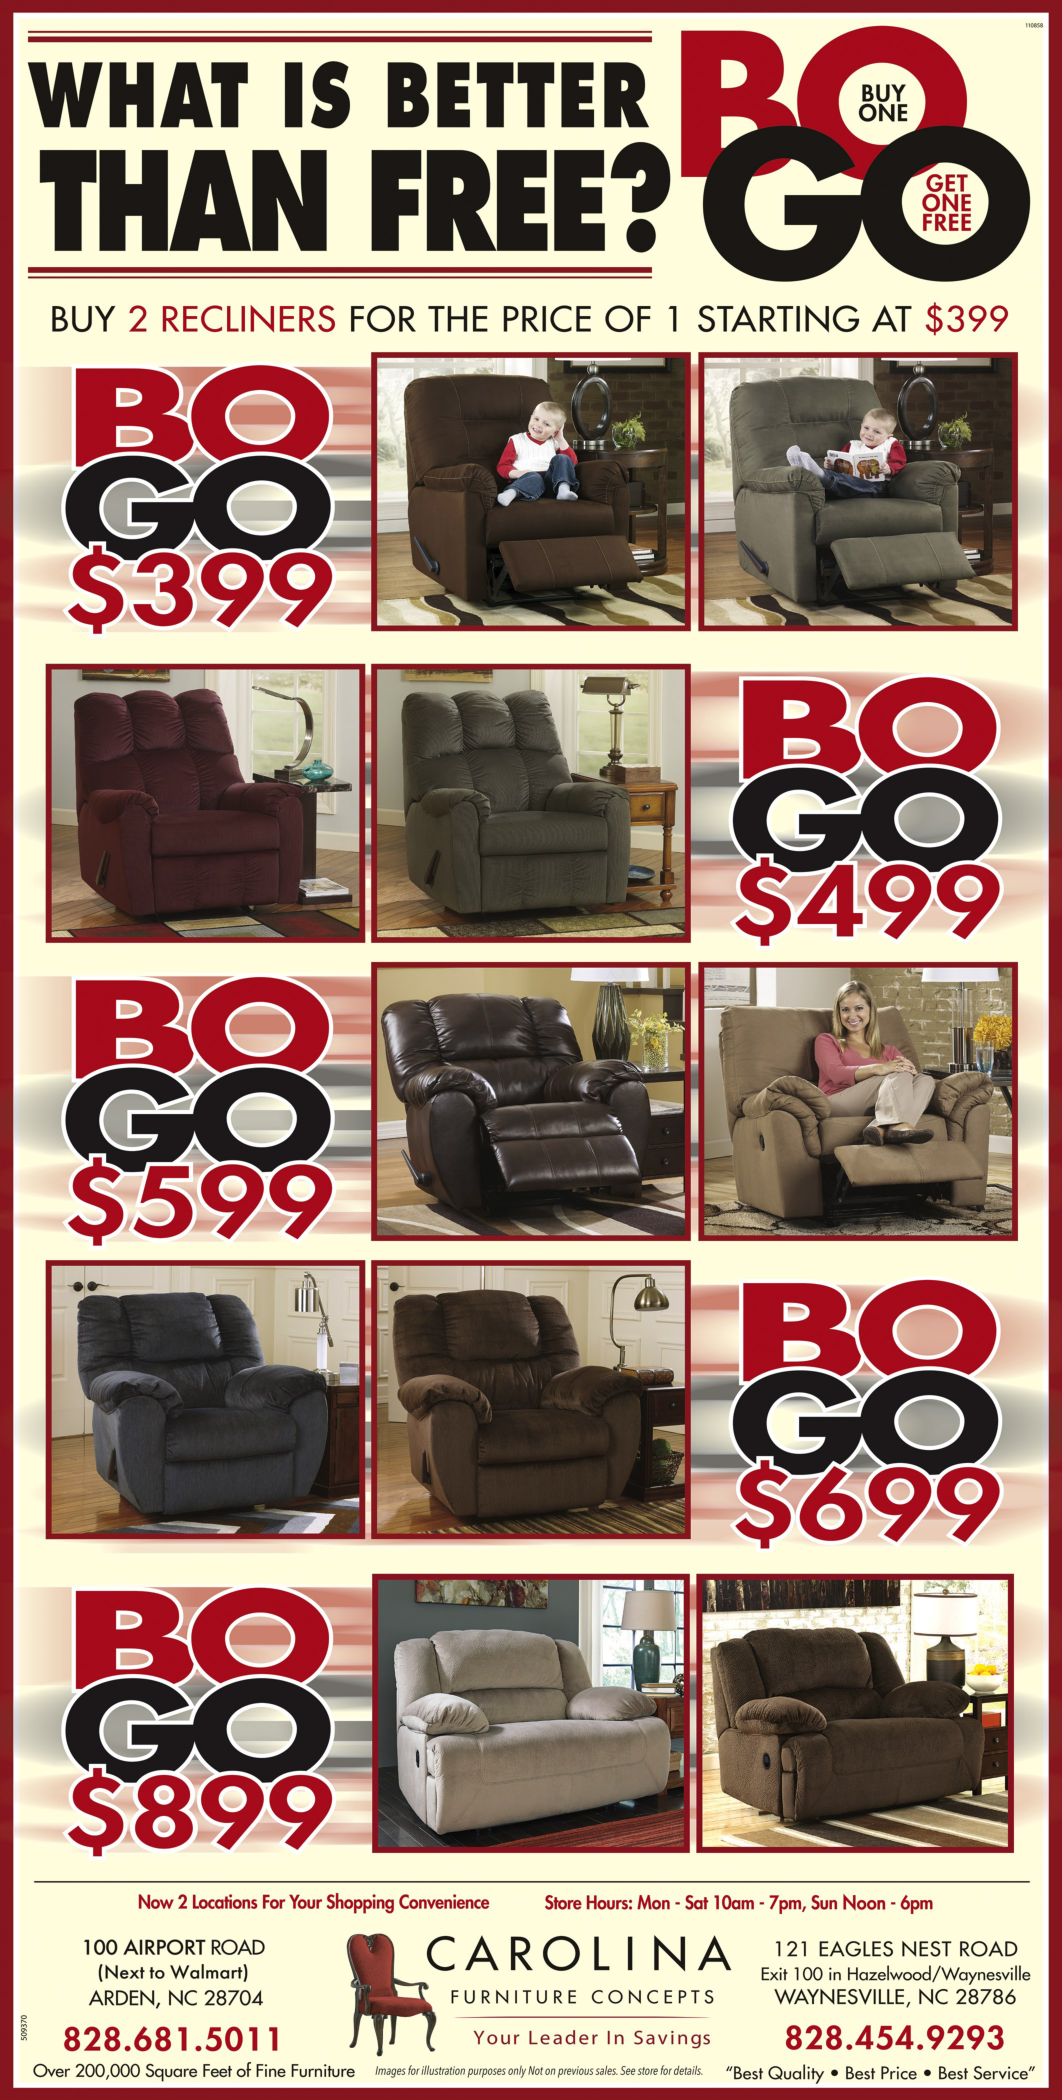 Buy one and get one FREE offer on recliners by Carolina Furniture